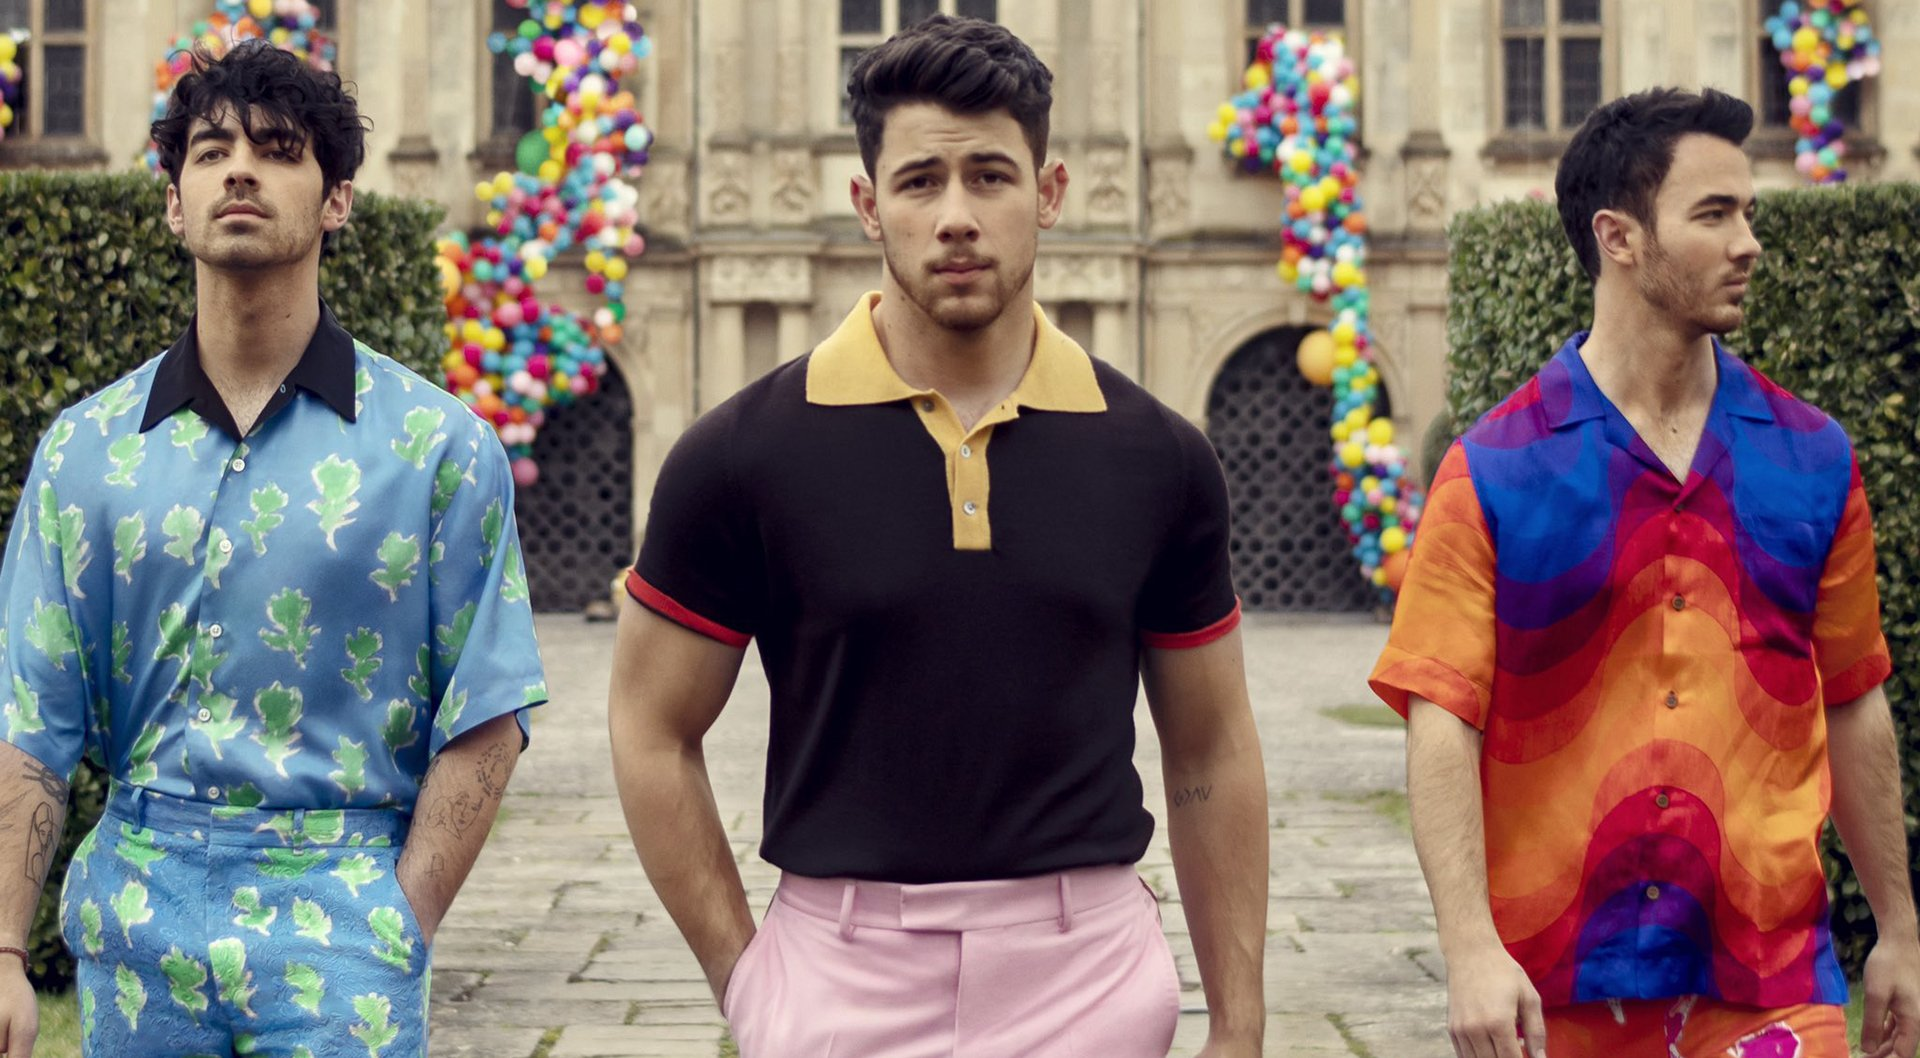 The Jonas Brothers walking past some hedges in the Sucker music video.